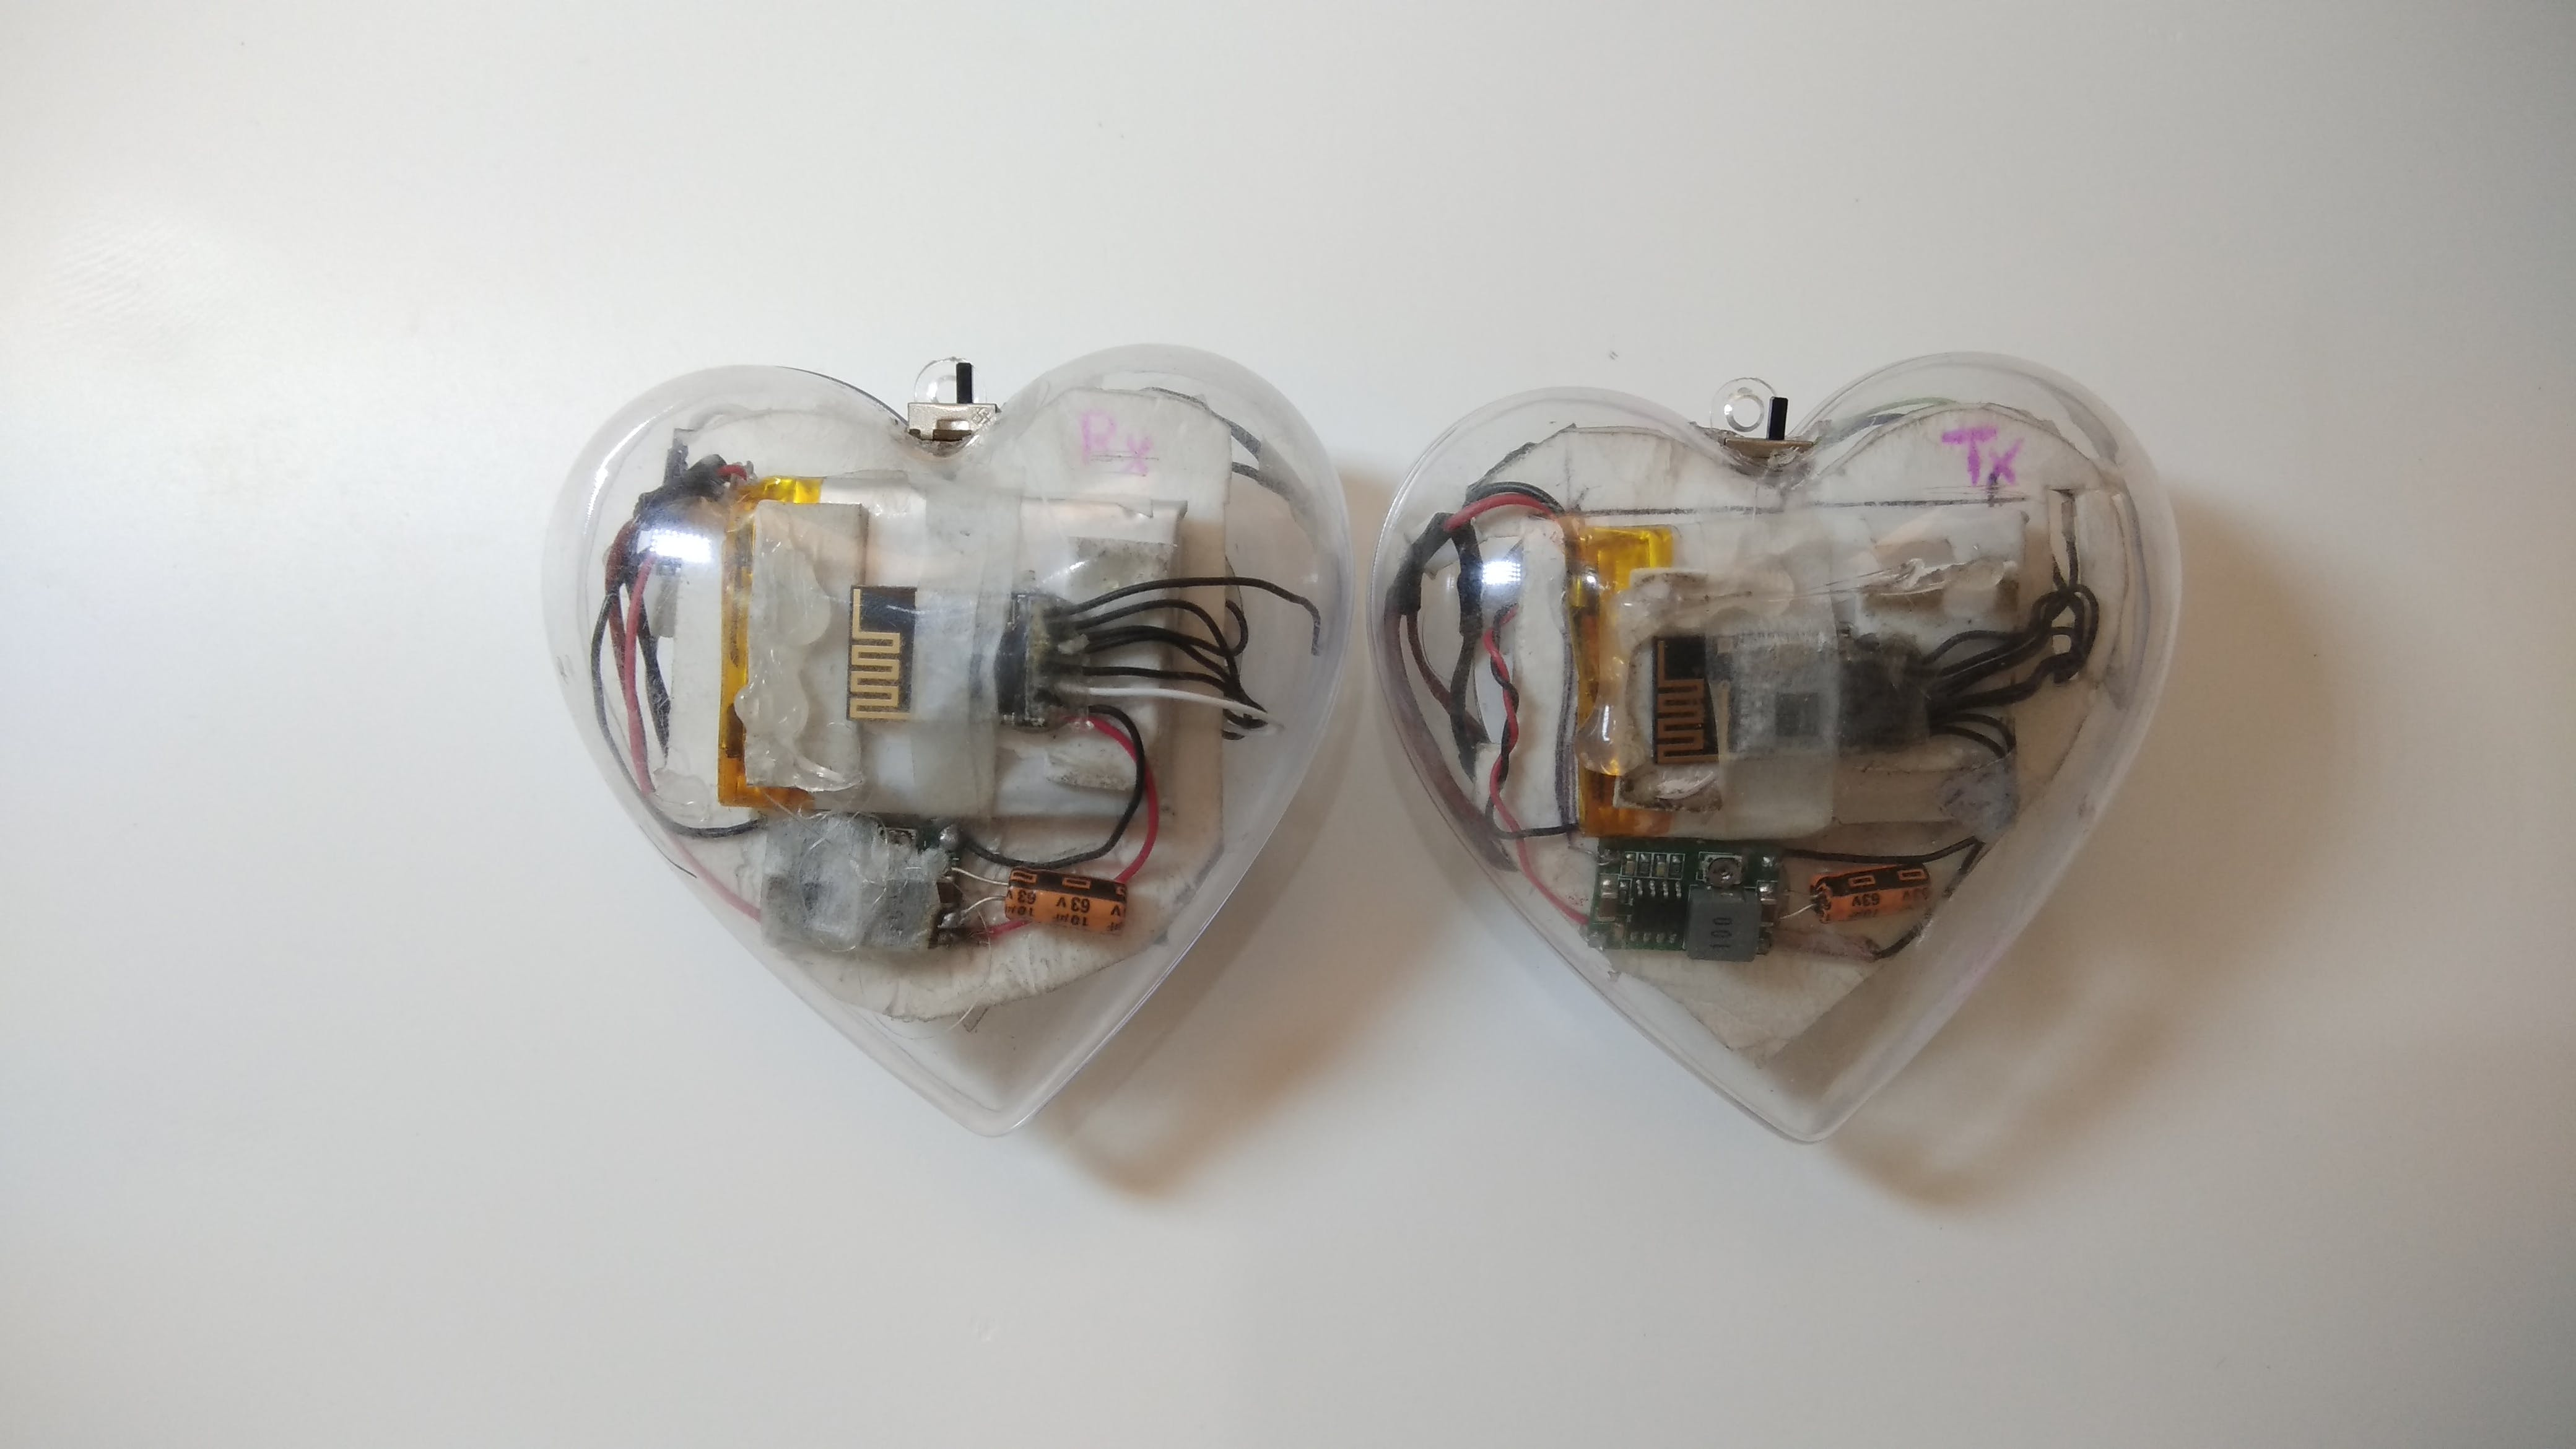 The back of the LED heart